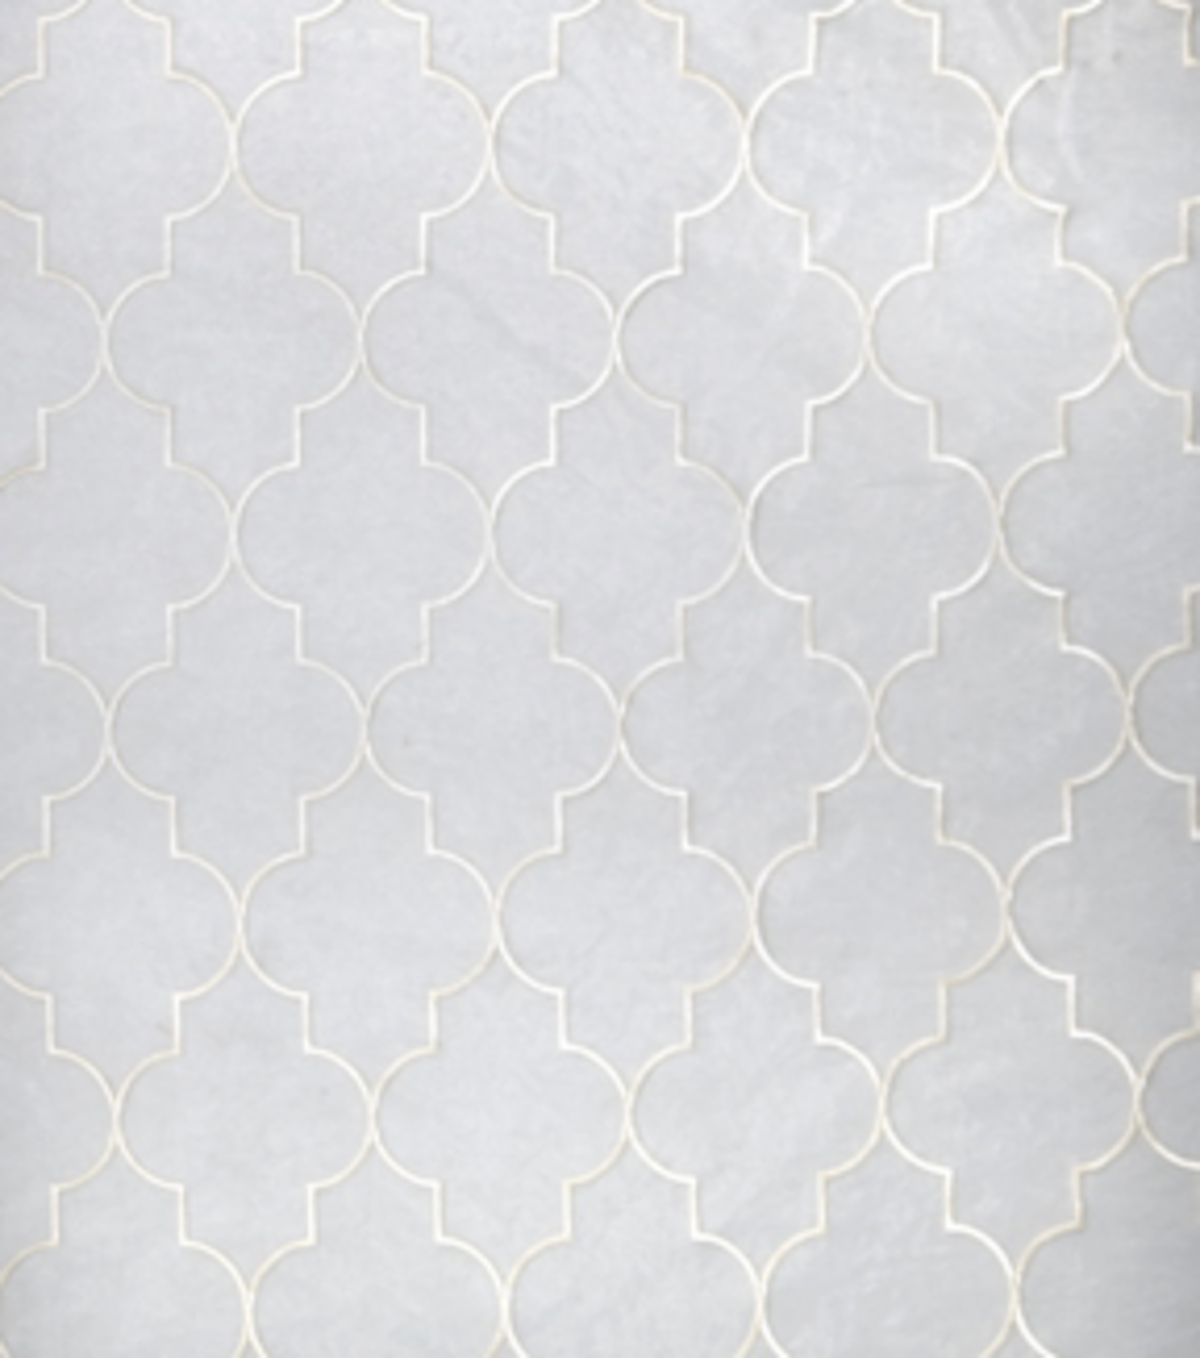 Home Decor 8\u0022x8\u0022 Fabric Swatch-Eaton Square Dominos   Champagne